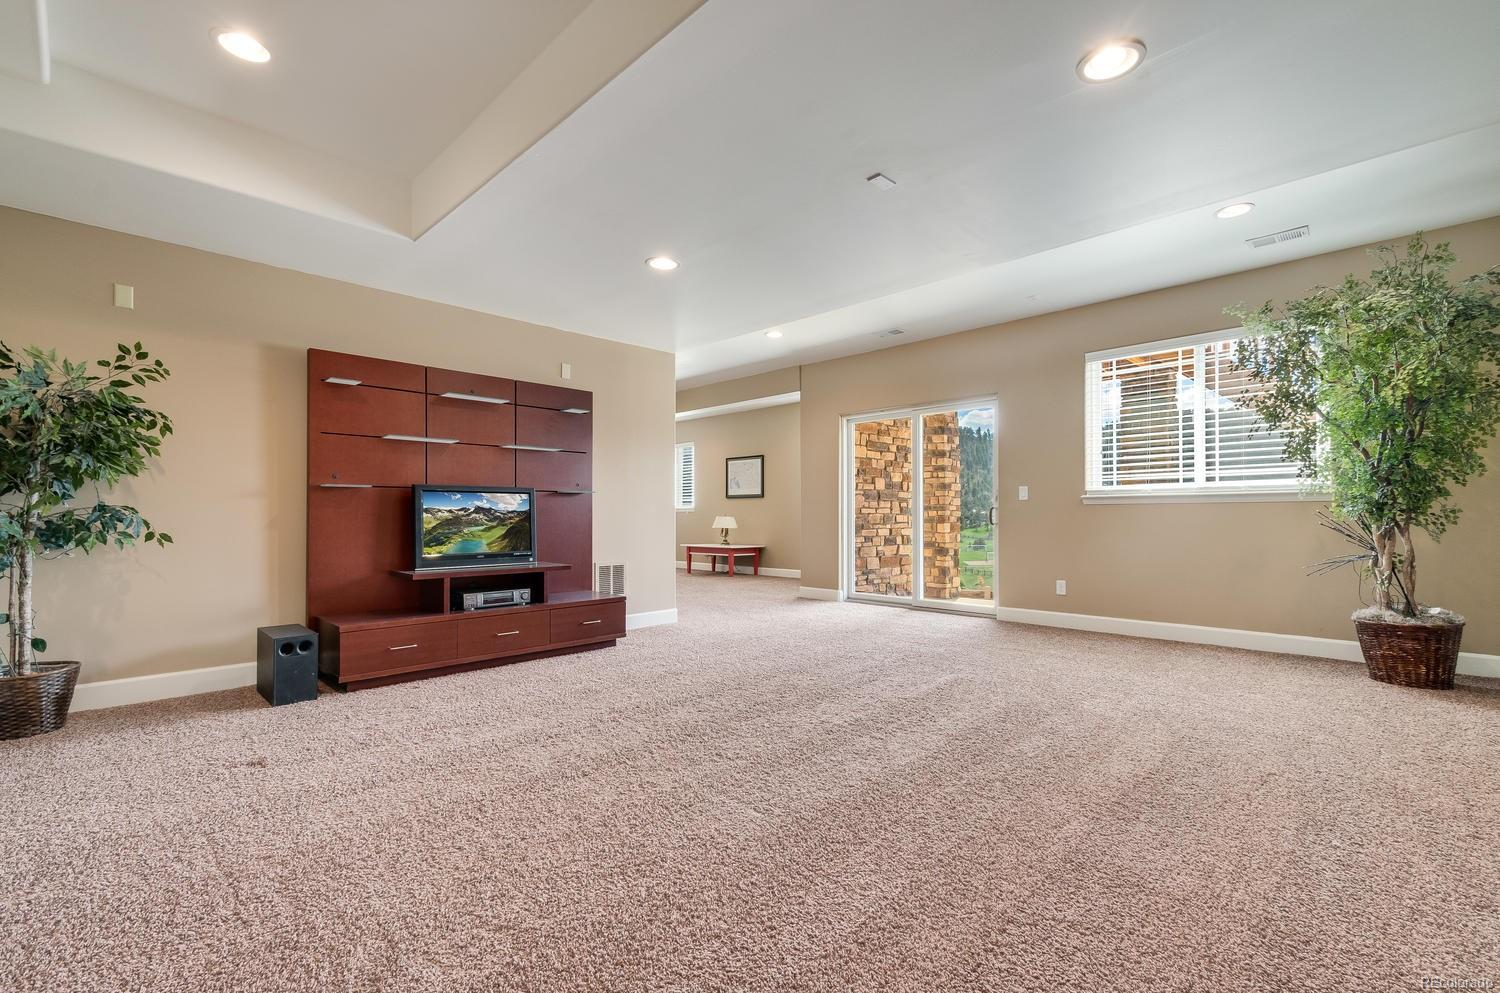 Spacious Media Room For Watching Movies or Sporting Events